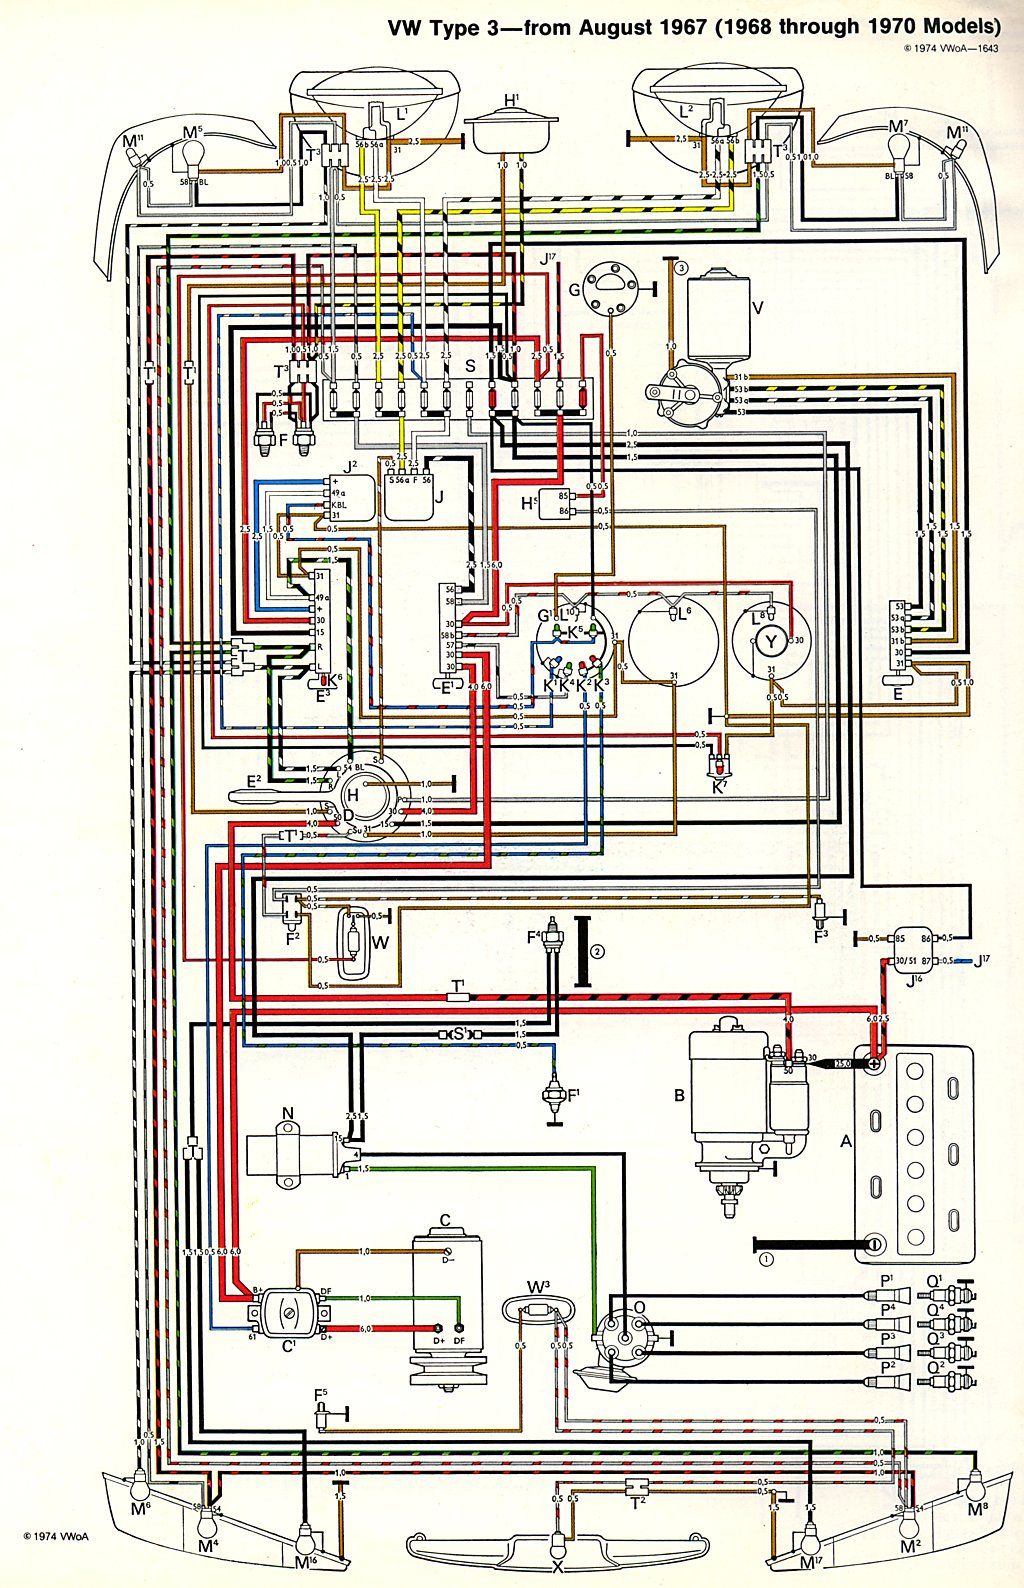 type3_6870 vw thing wiring diagram 1974 beetle heater diagram \u2022 wiring Wiring Harness Diagram at creativeand.co